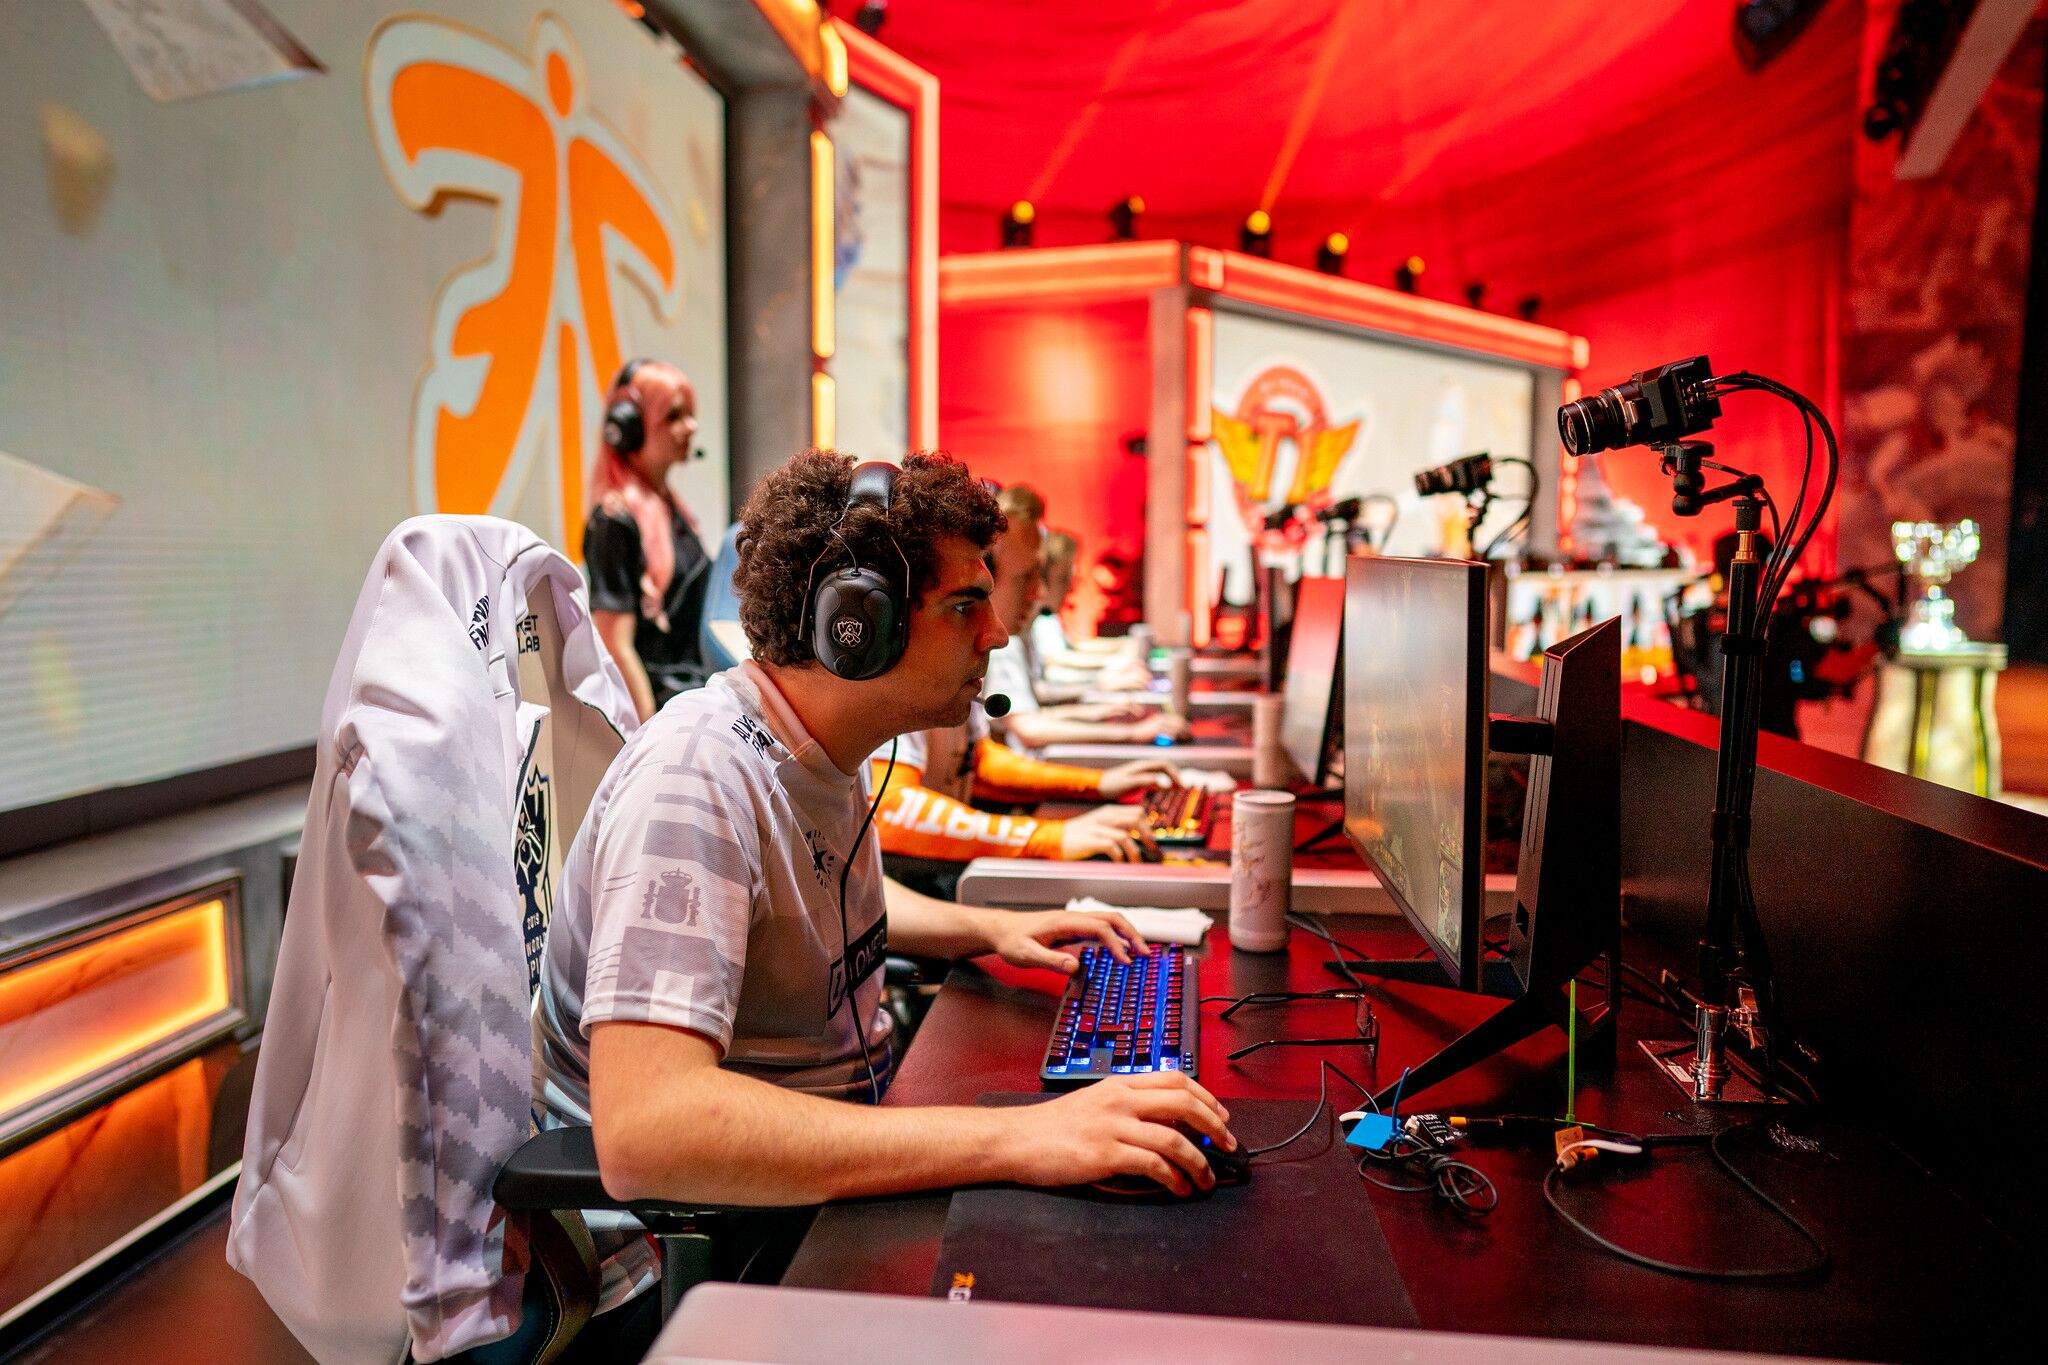 League of Legends Worlds 2019: Day 7 recap – Fnatic do the impossible